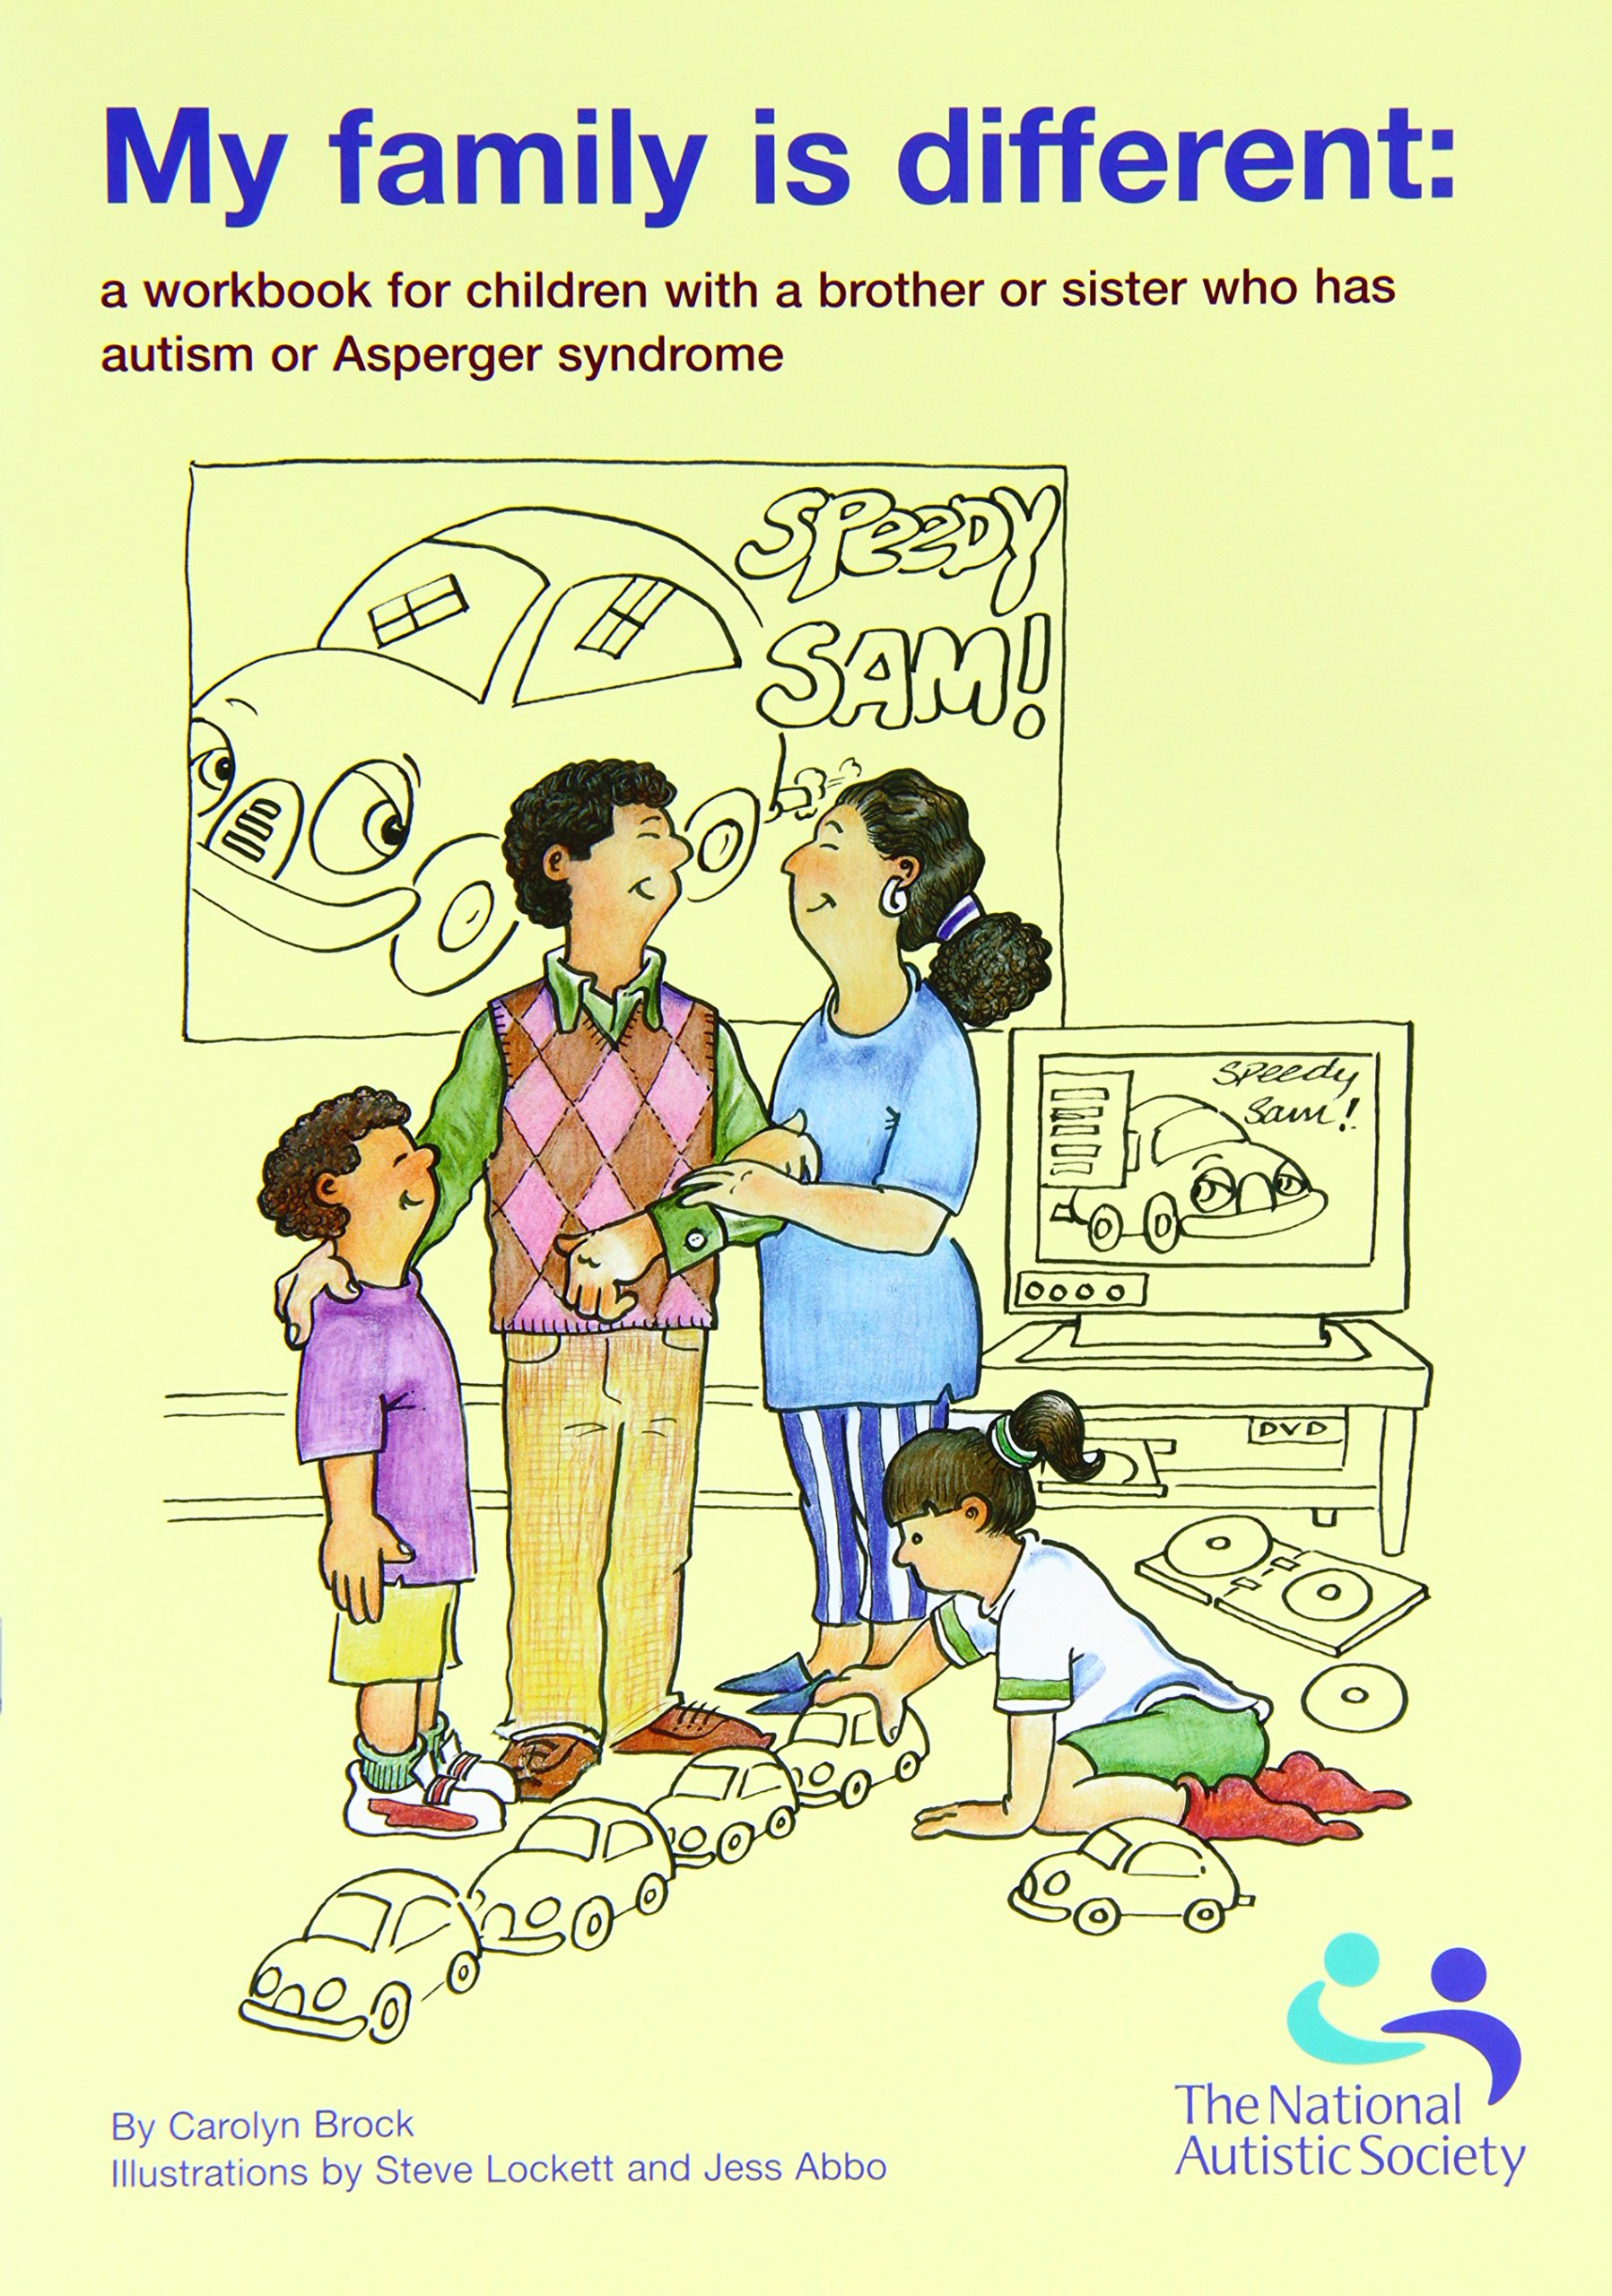 My Family is Different A Workbook for Children with a Brother or